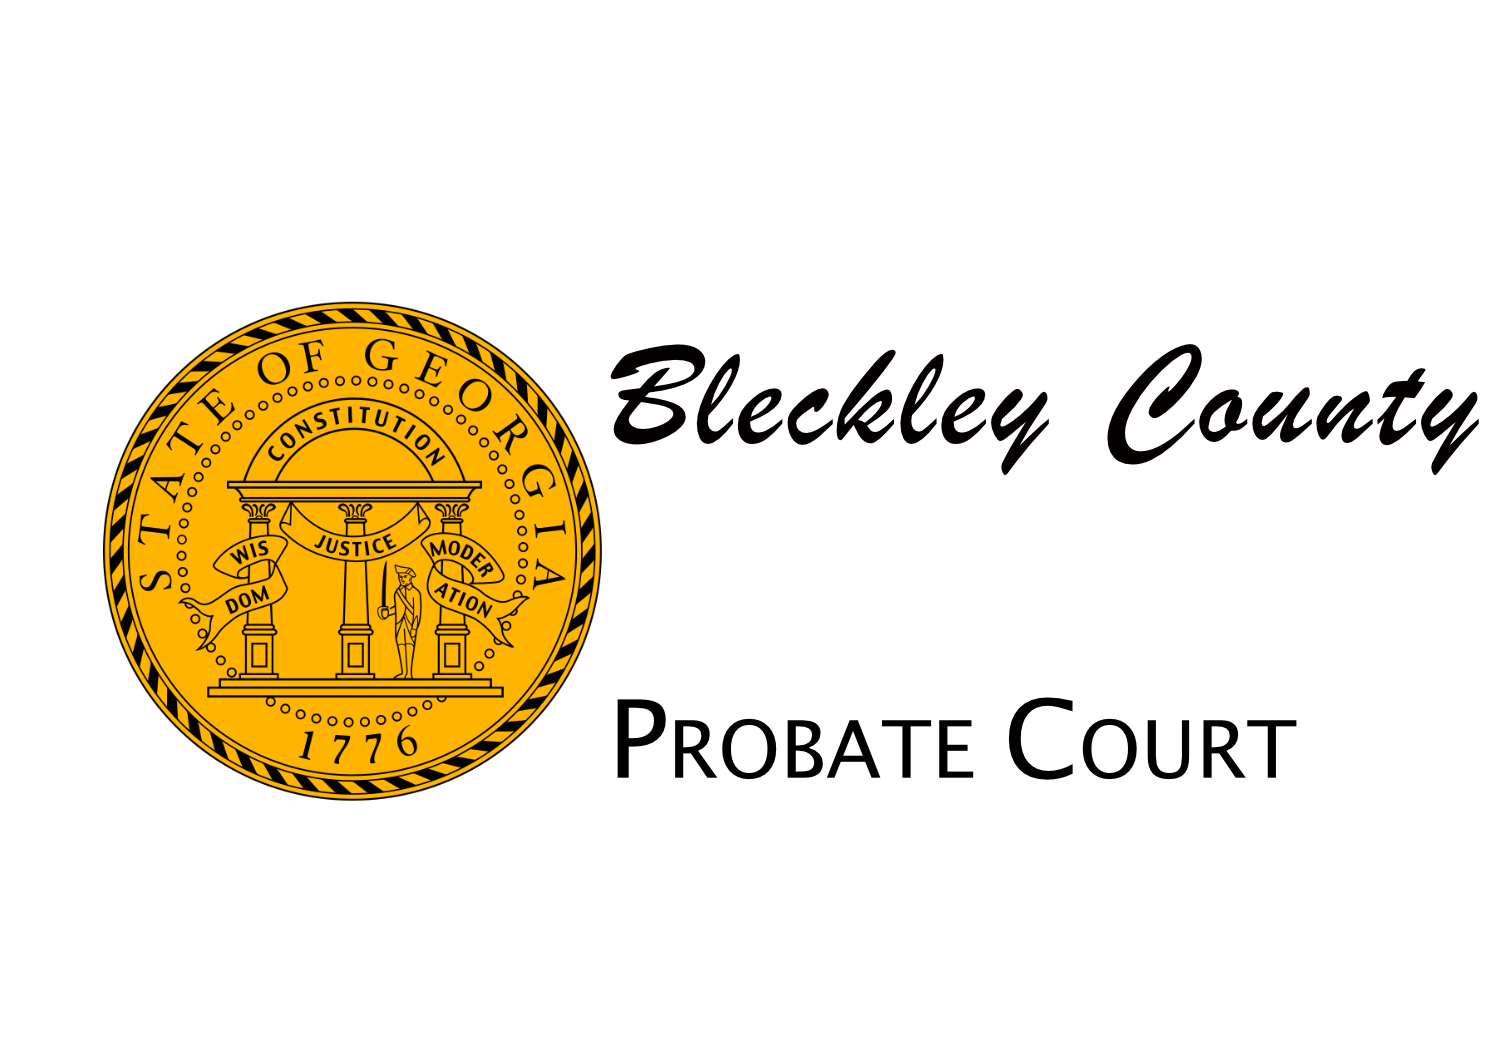 Bleckley County Probate Court